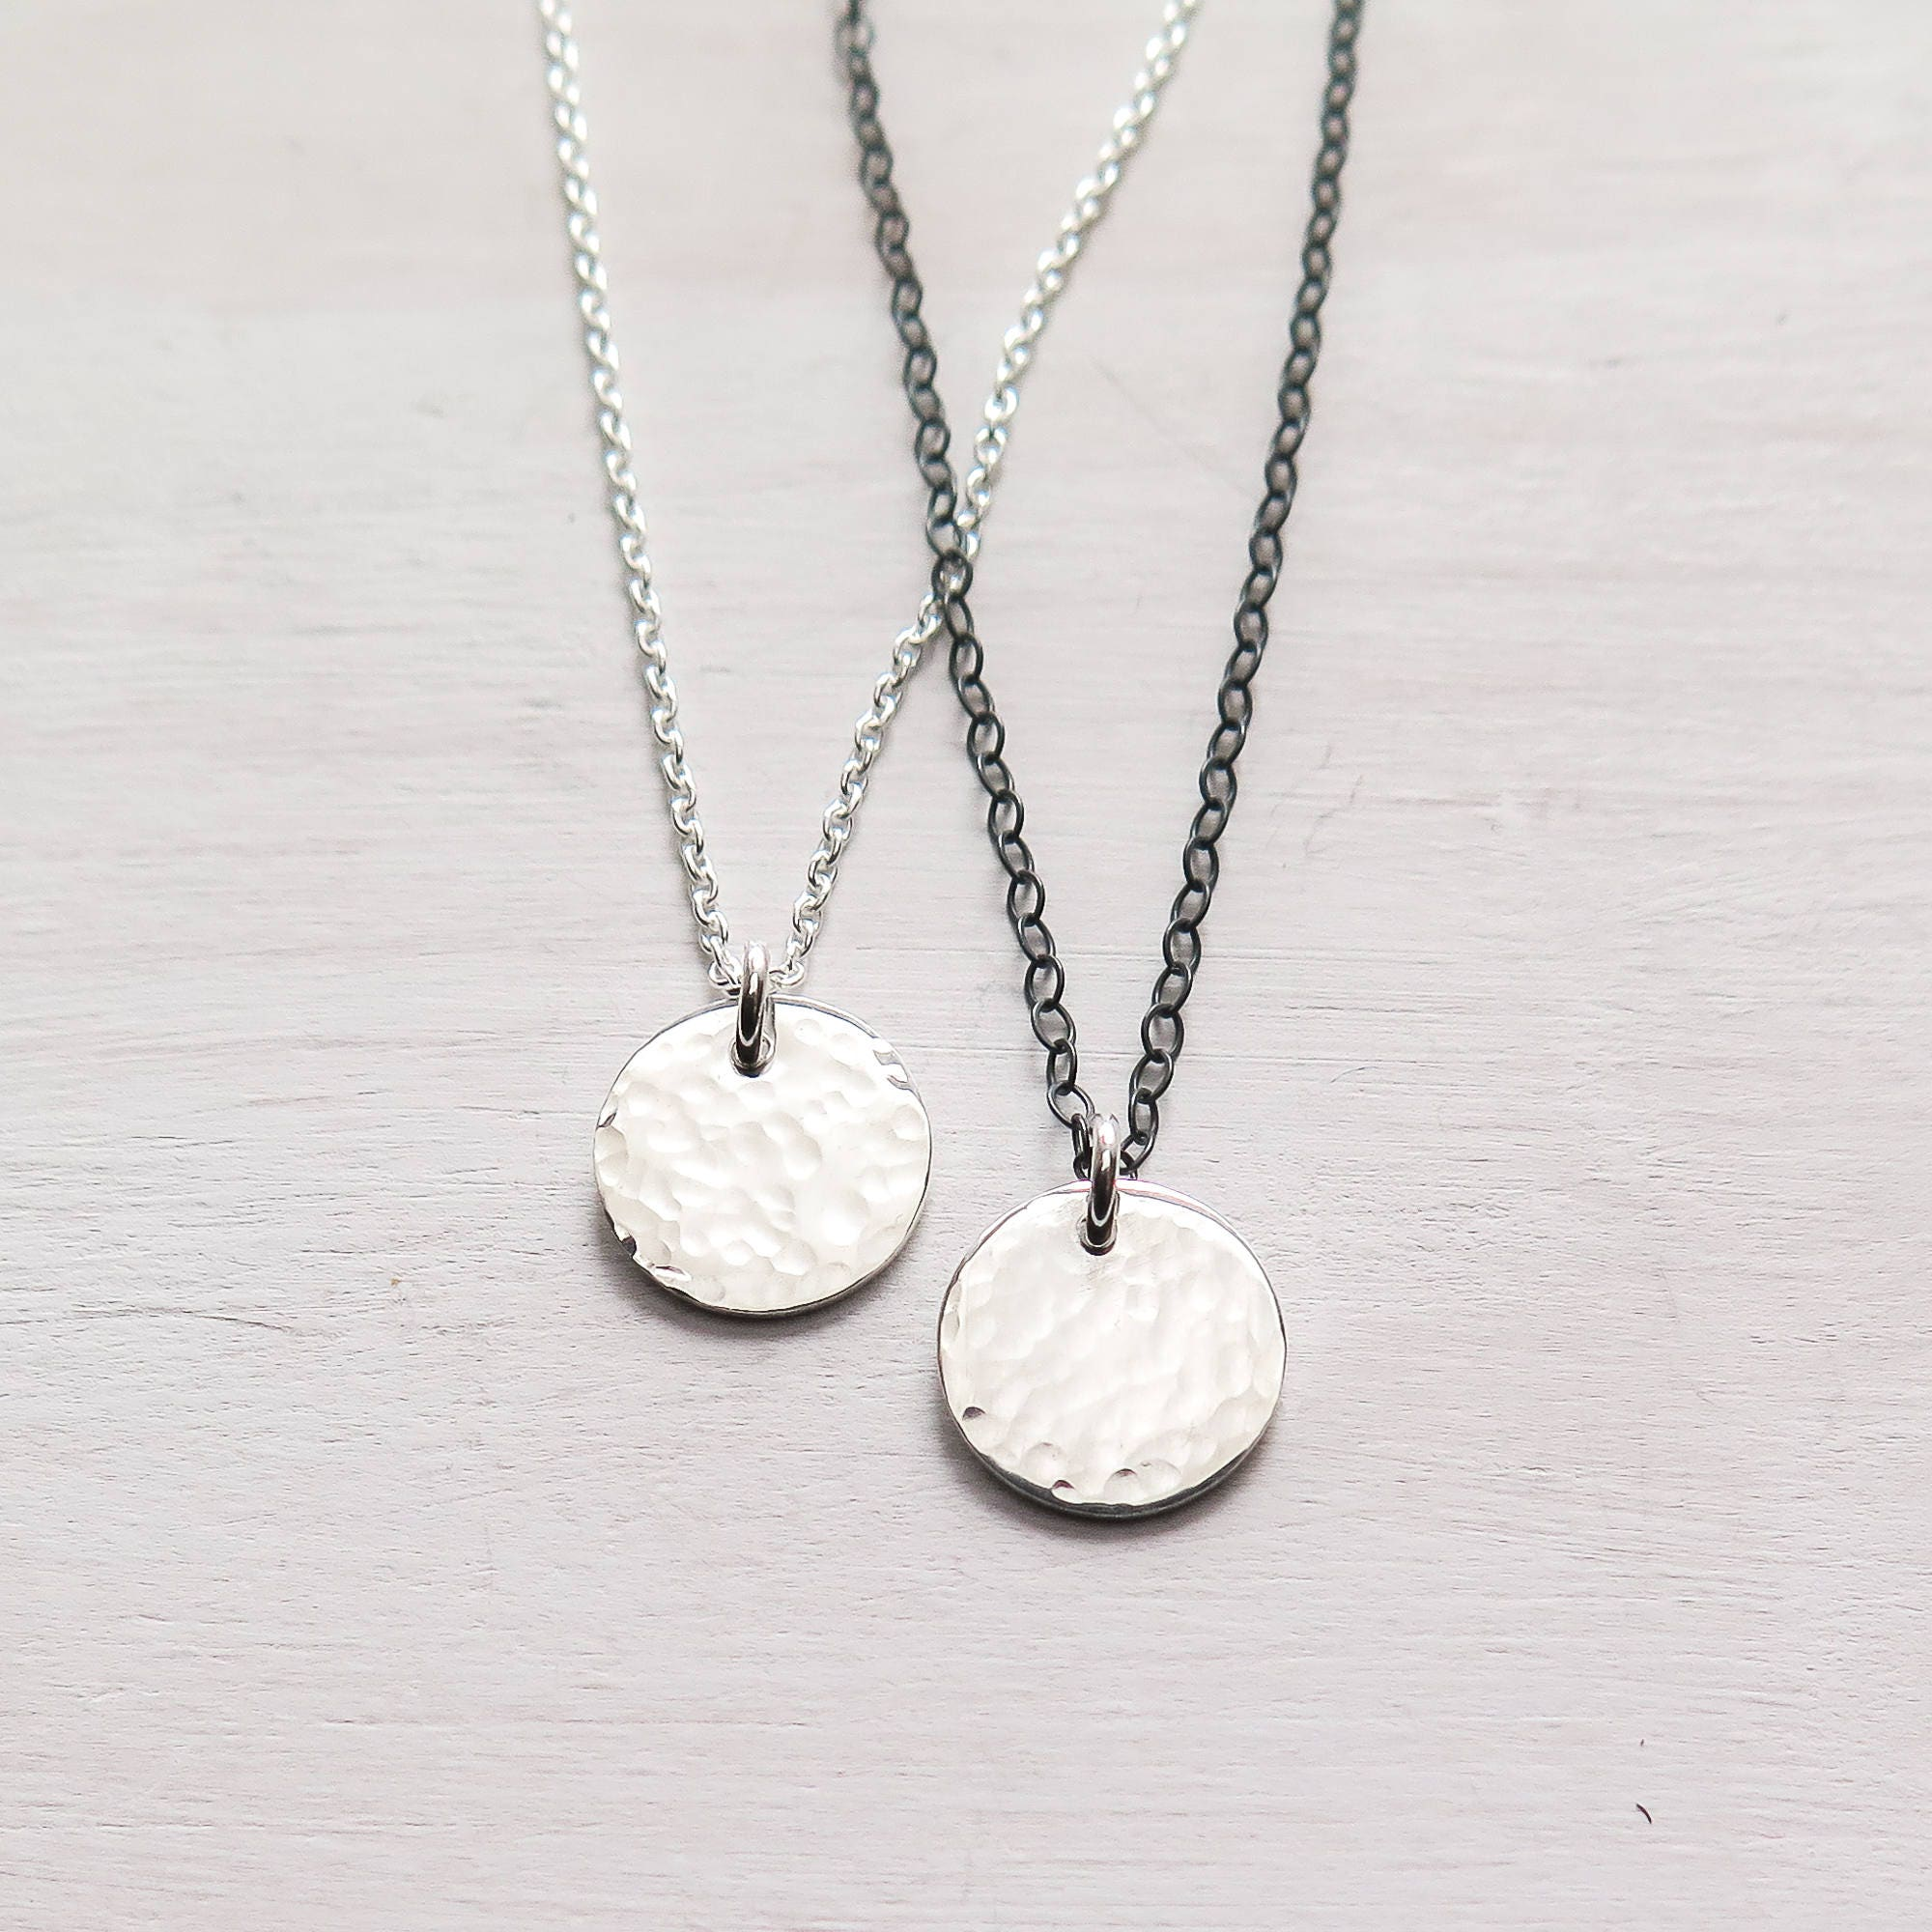 meyer shop petite layered discs silver and strand sterling tiny initials double initial e gosia two letter jewelry heart necklace